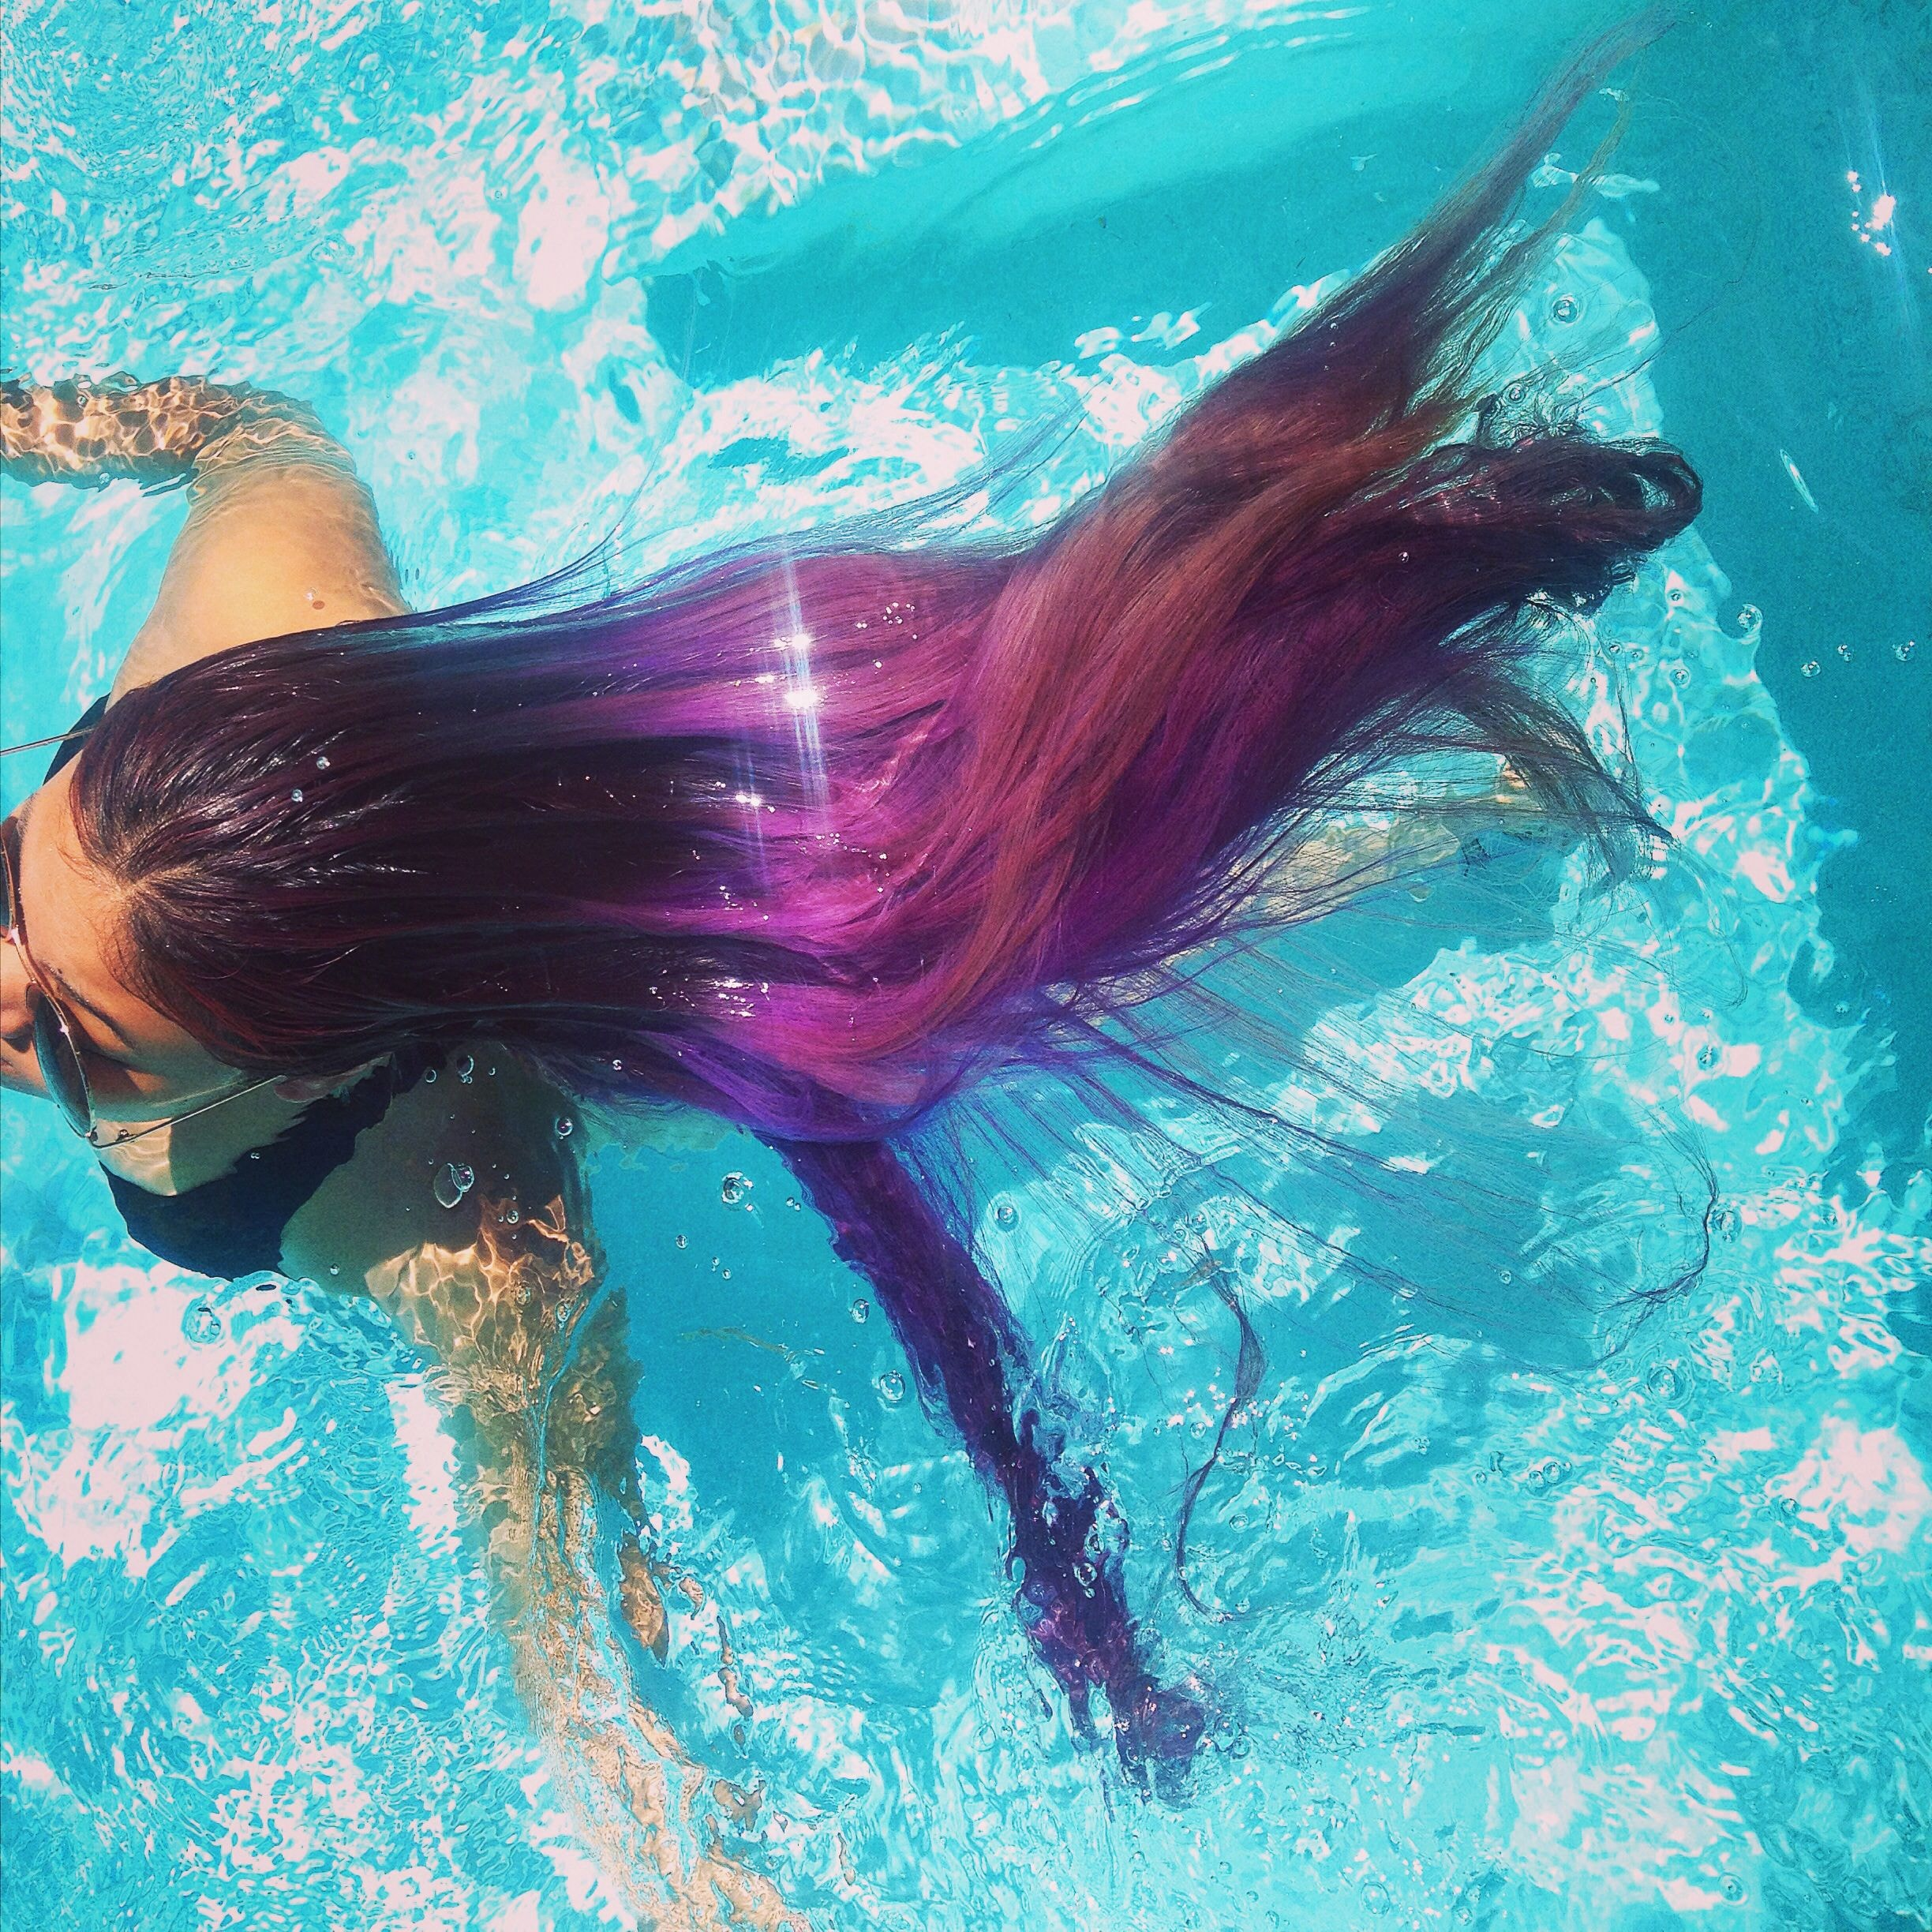 Chlorine Proof Purple Hair dye 2020